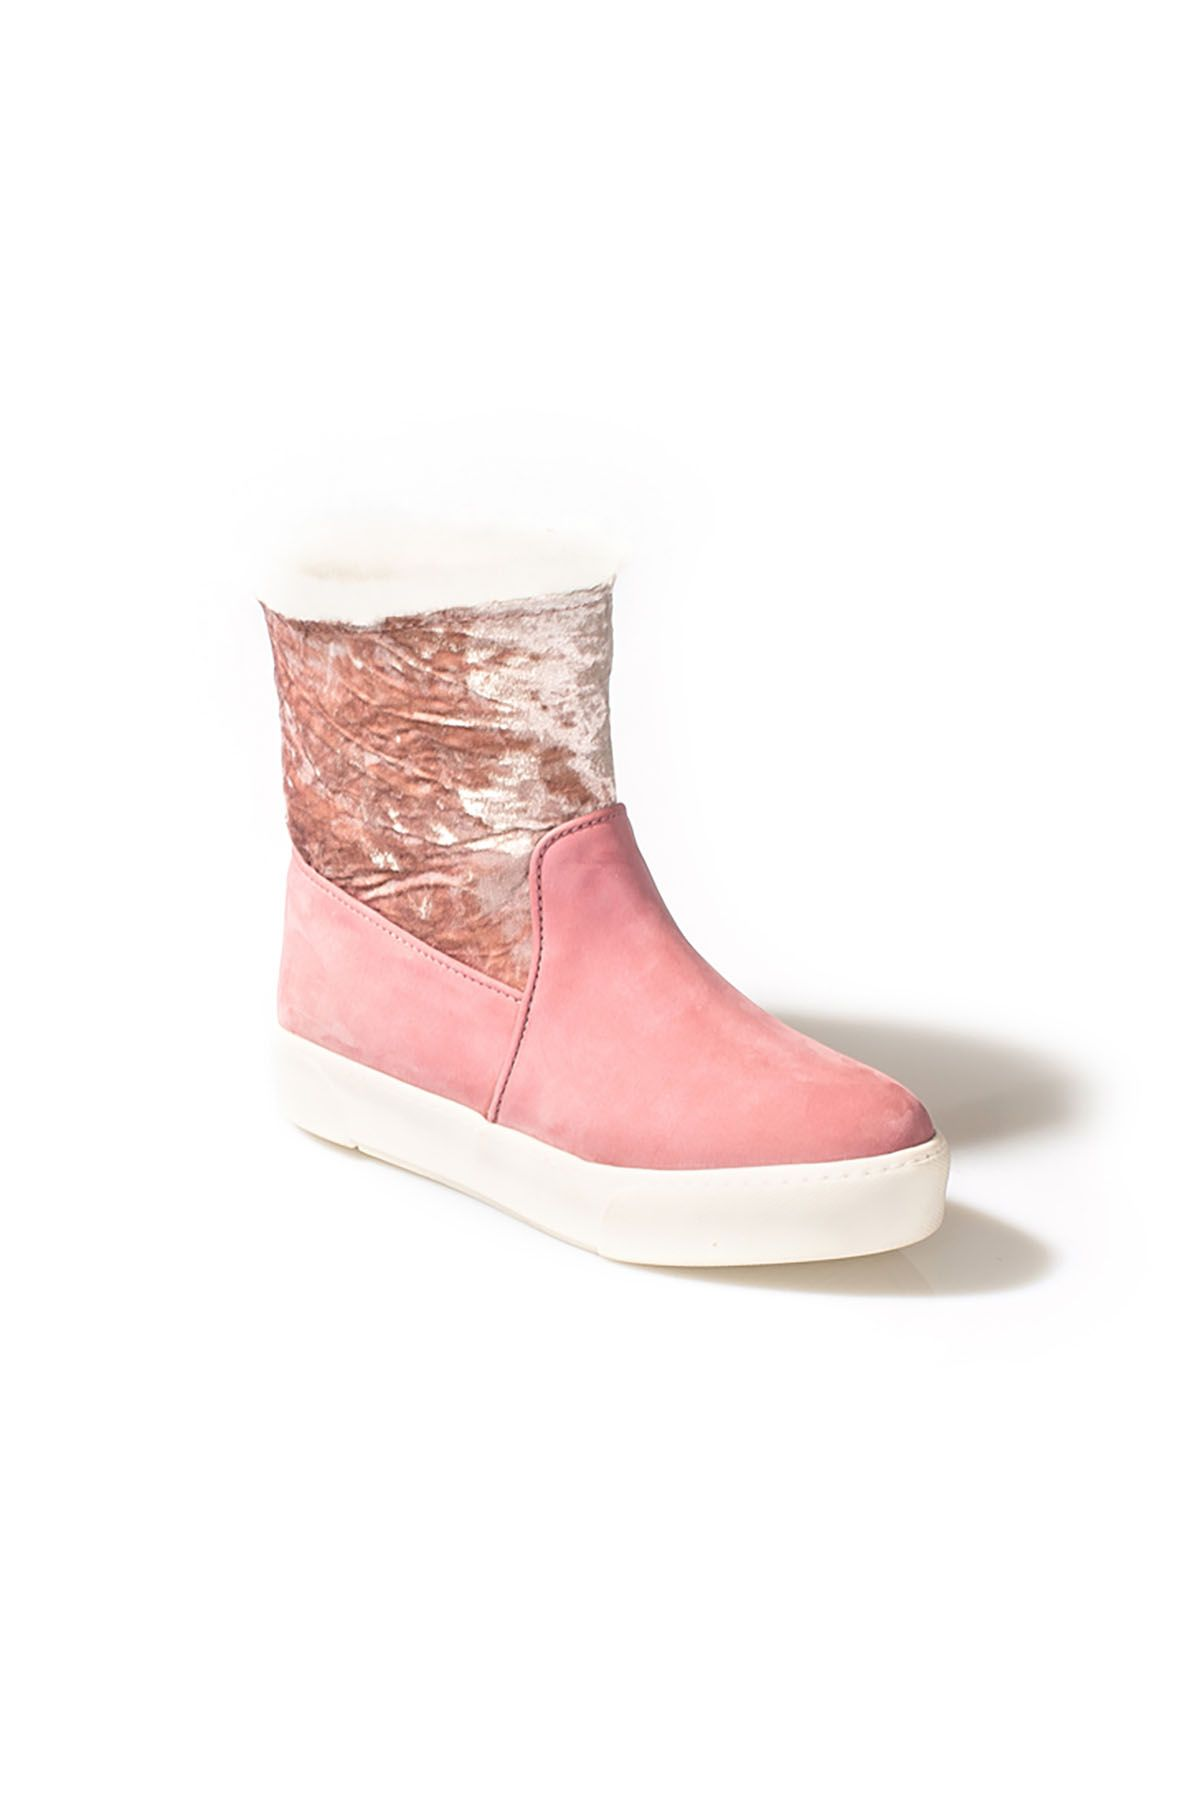 Pegia Velvet Women Boots From Genuine Fur And Nubuck Pink